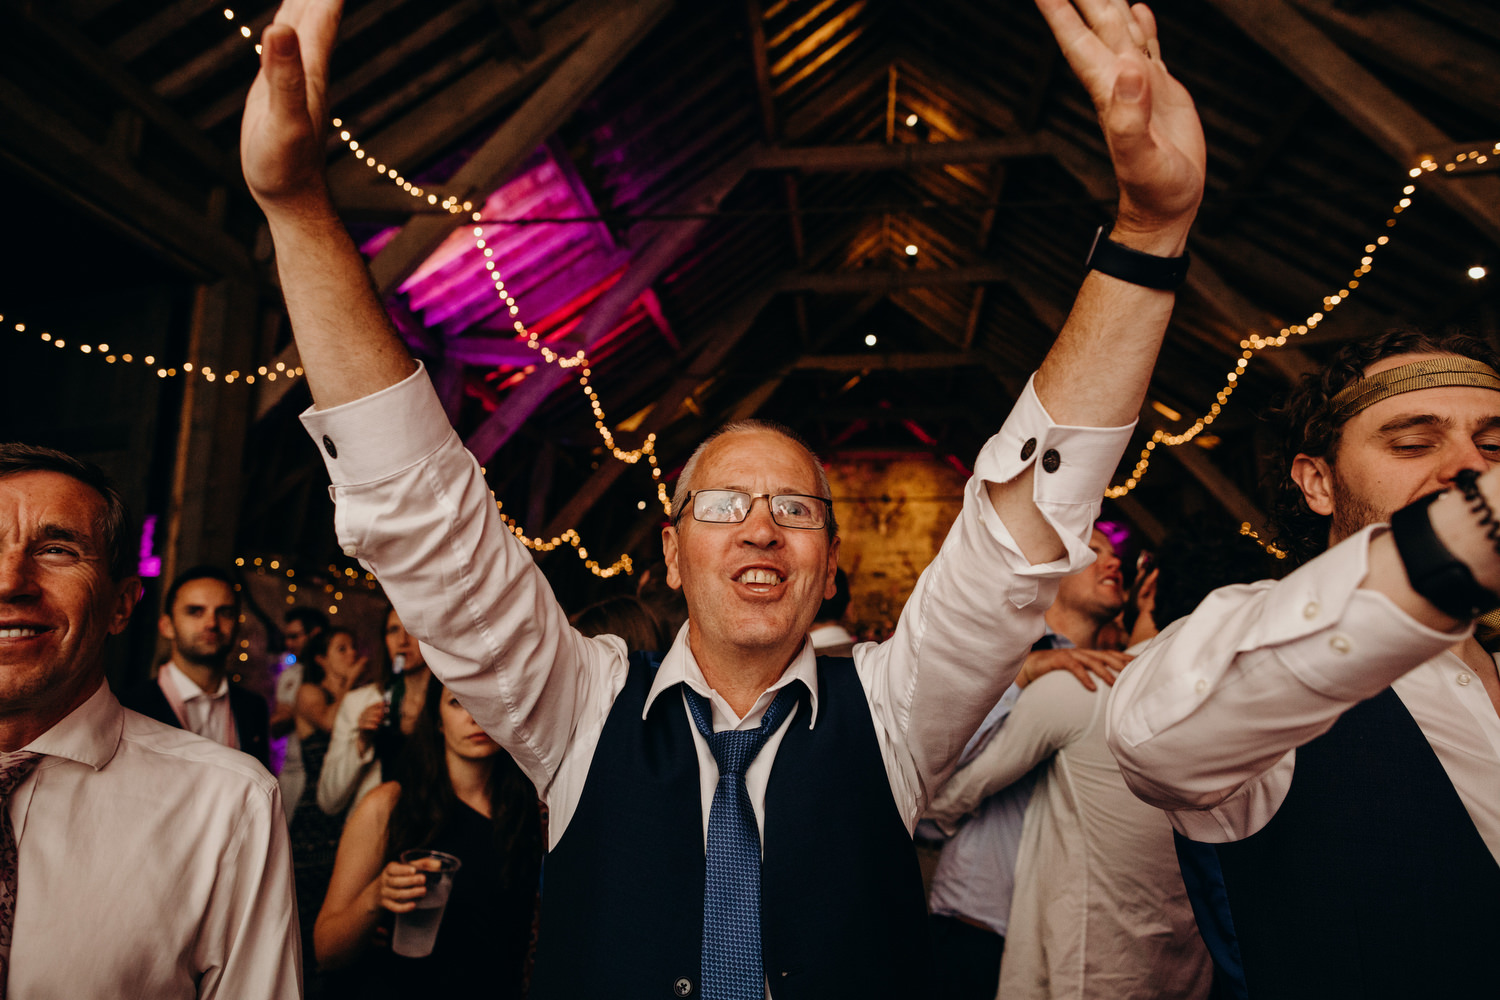 guy puts hands up in air at wedding